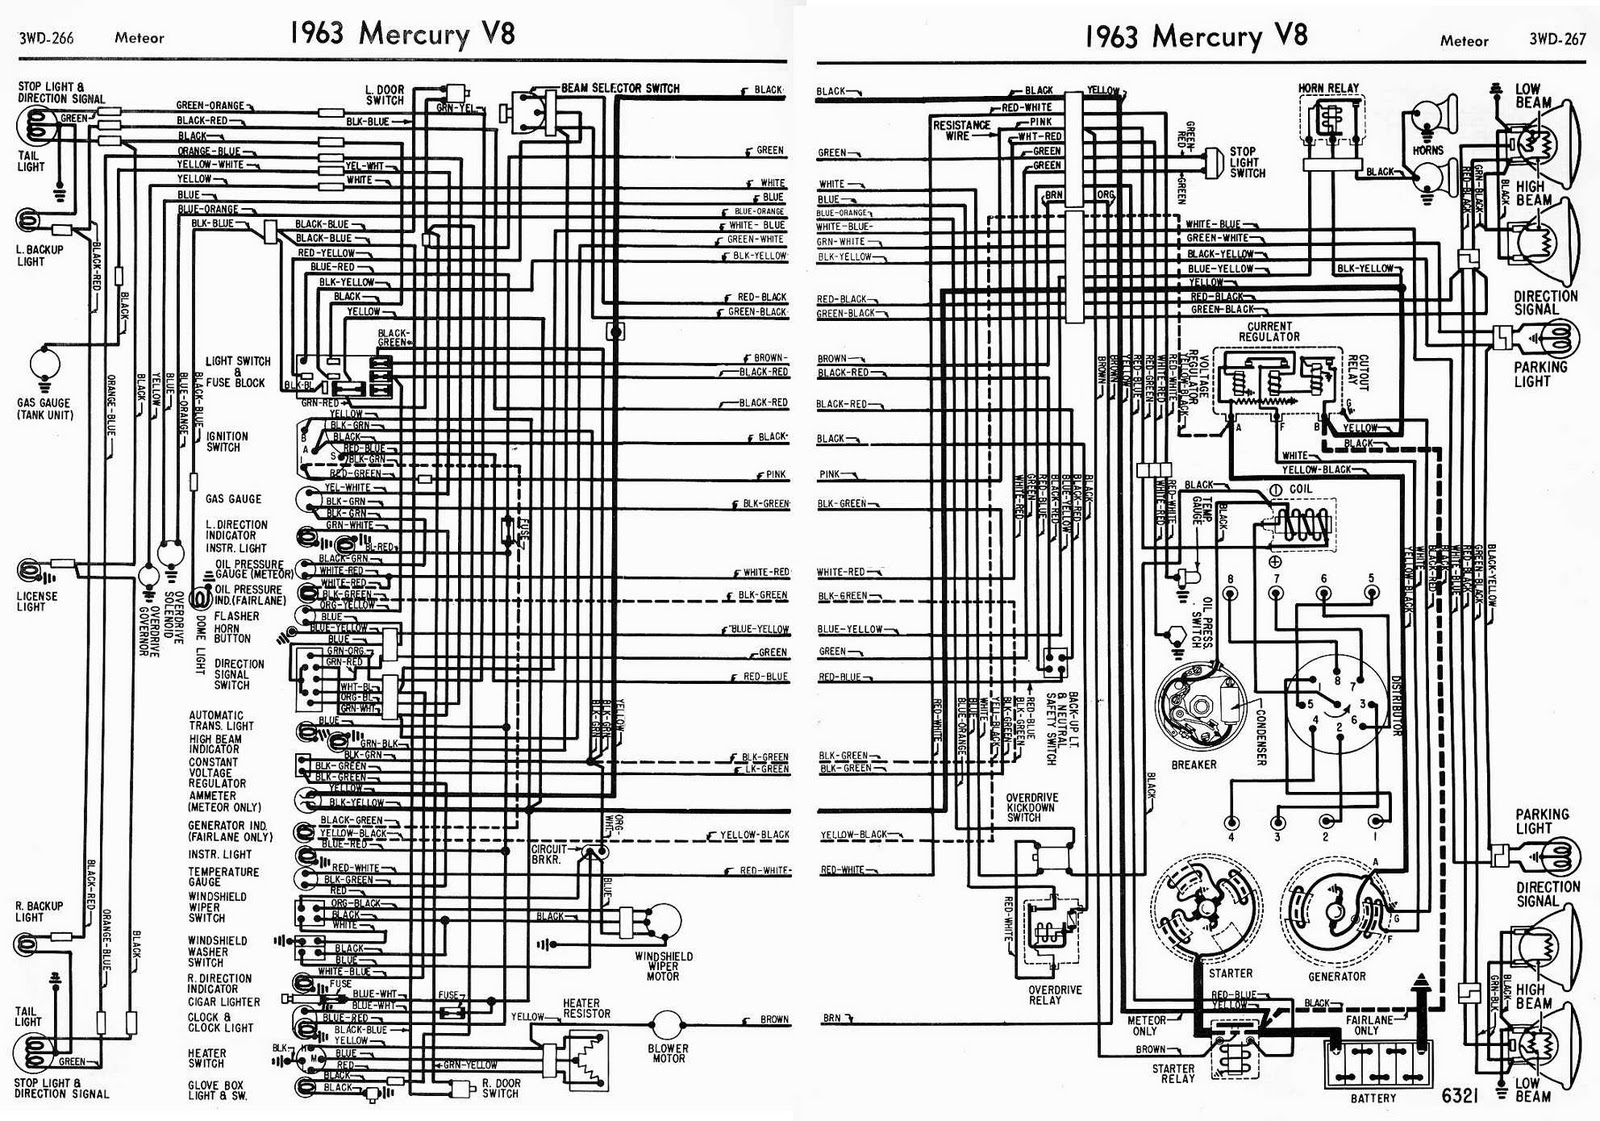 medium resolution of wrg 3427 1981 ford f100 wiring diagram1981 ford econoline van wiring diagram electrical wiring diagrams